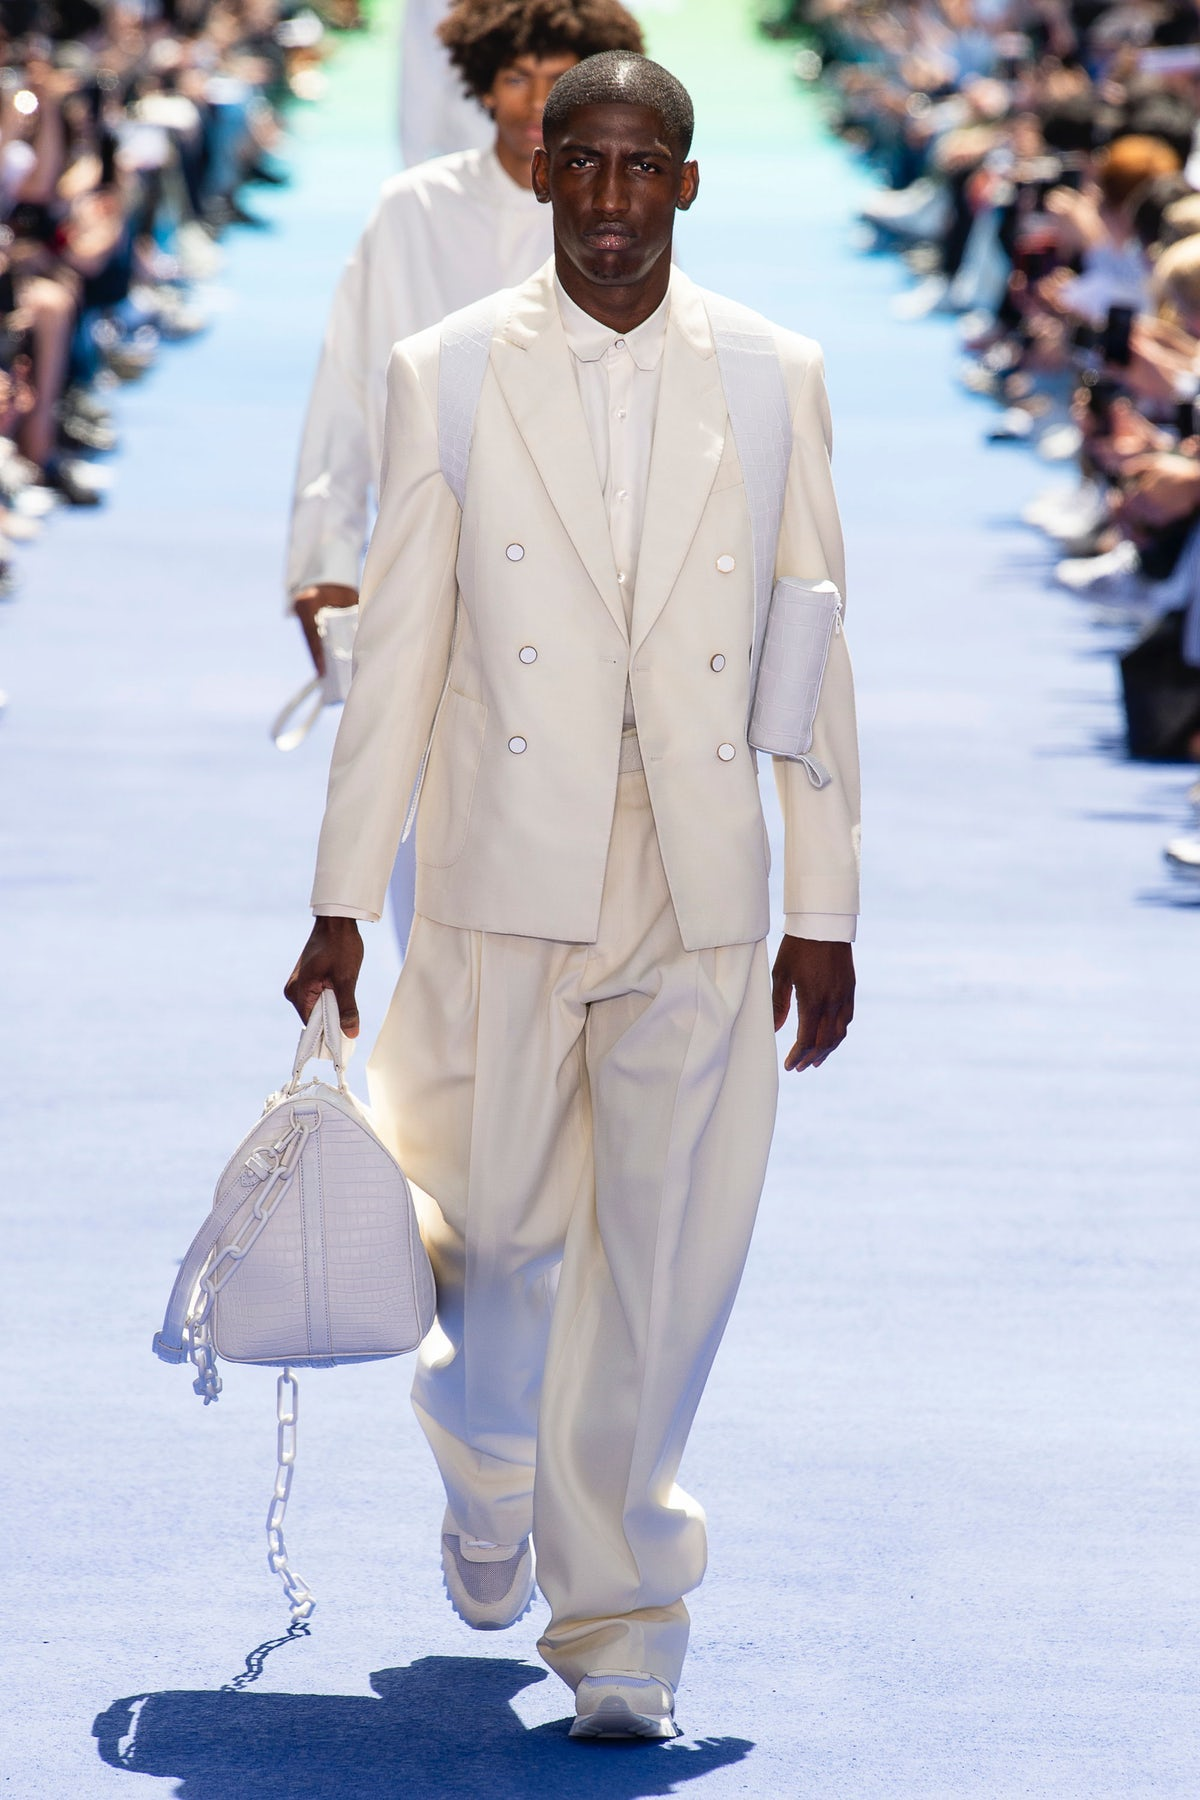 Louis Vuitton Spring/Summer 2019 | Source: Indigital.tv